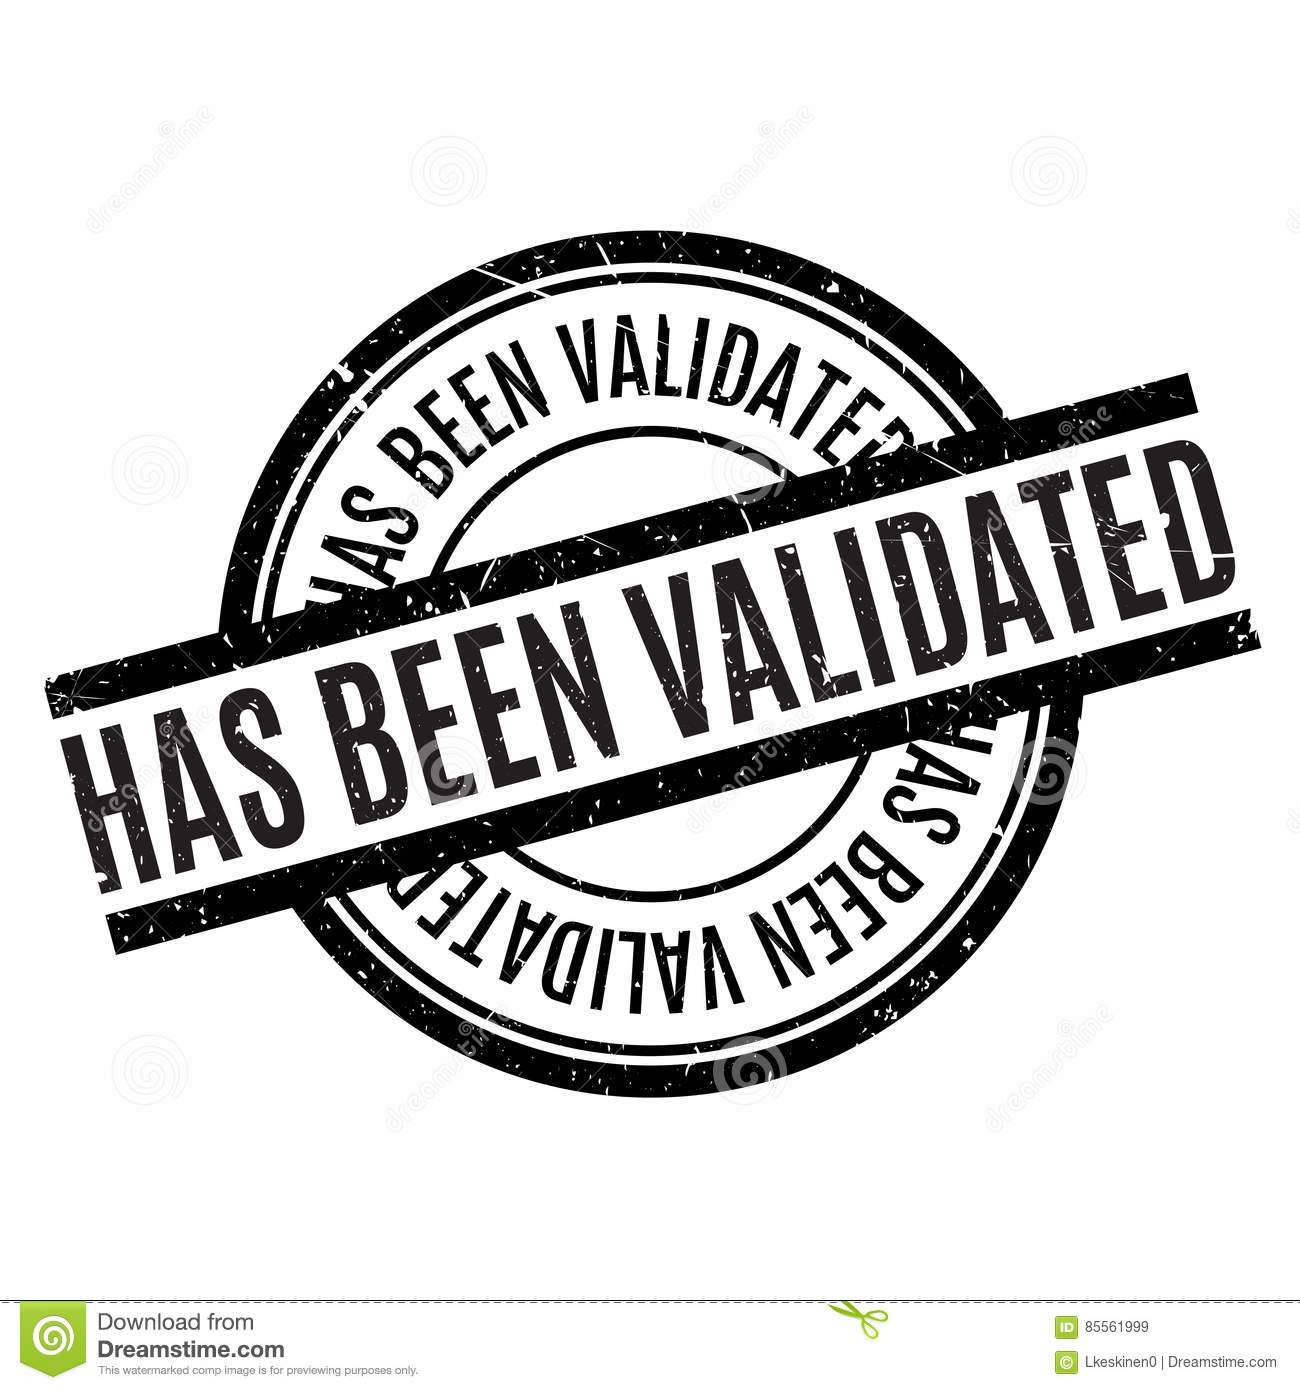 Has Been Validated Rubber Stamp Stock Image